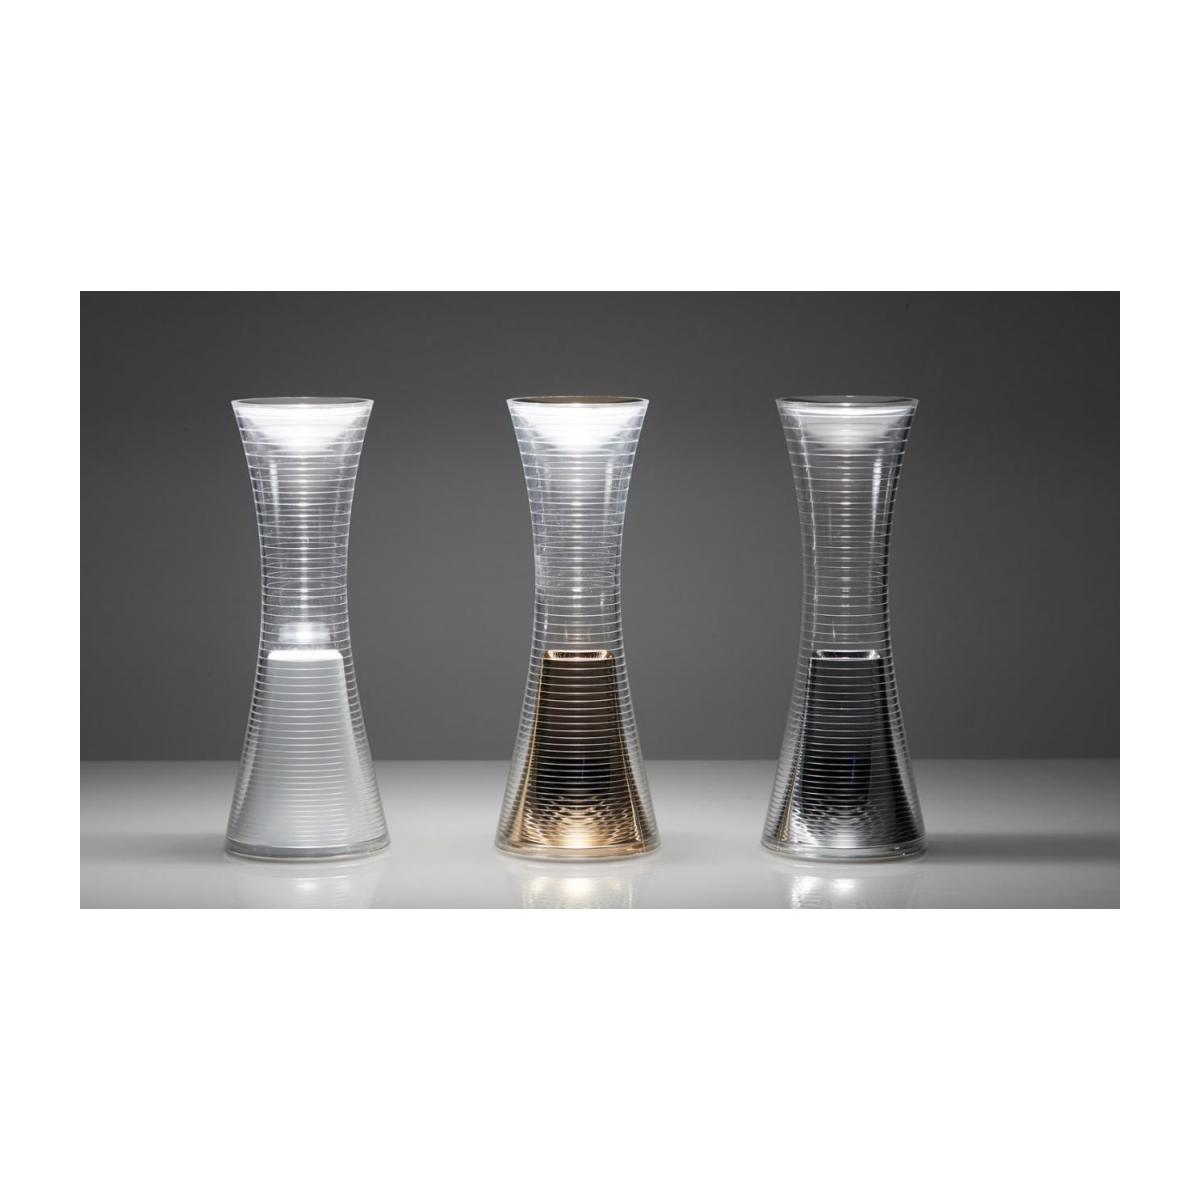 Come Together - Lampe de table cuivre n°2